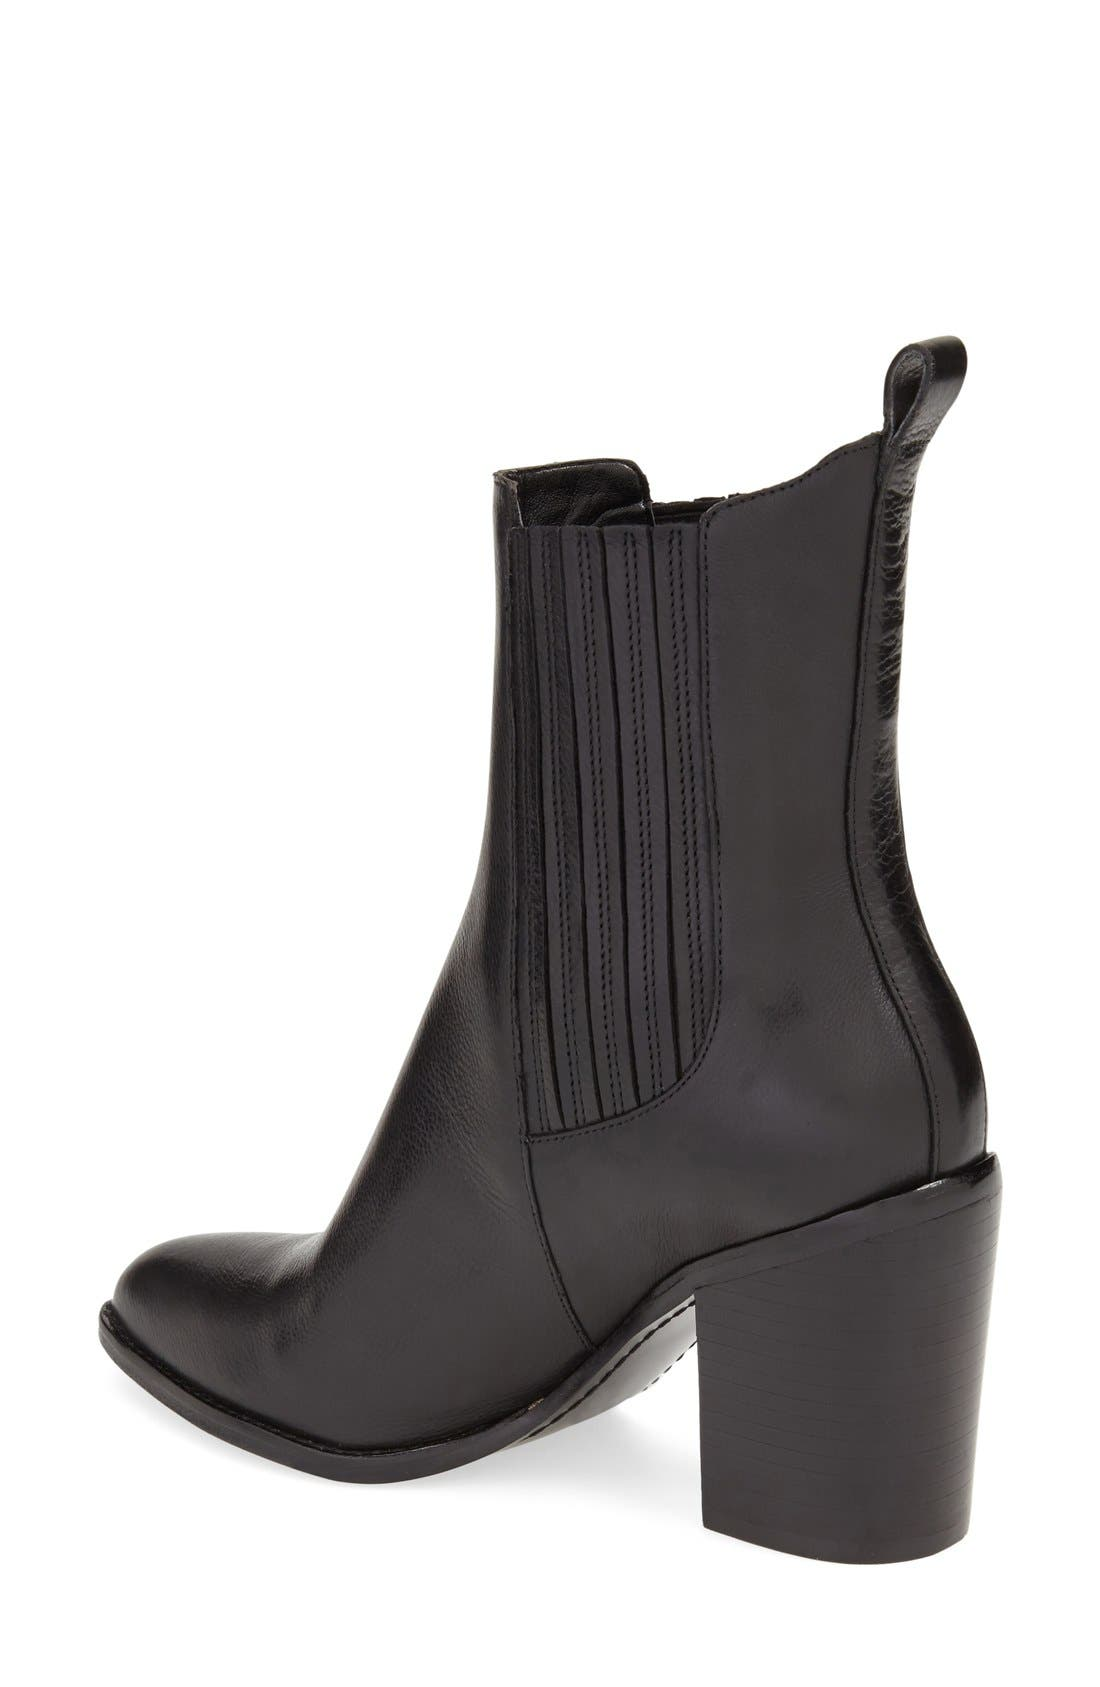 'Alisa' Pointy Toe Chelsea Boot,                             Alternate thumbnail 4, color,                             001